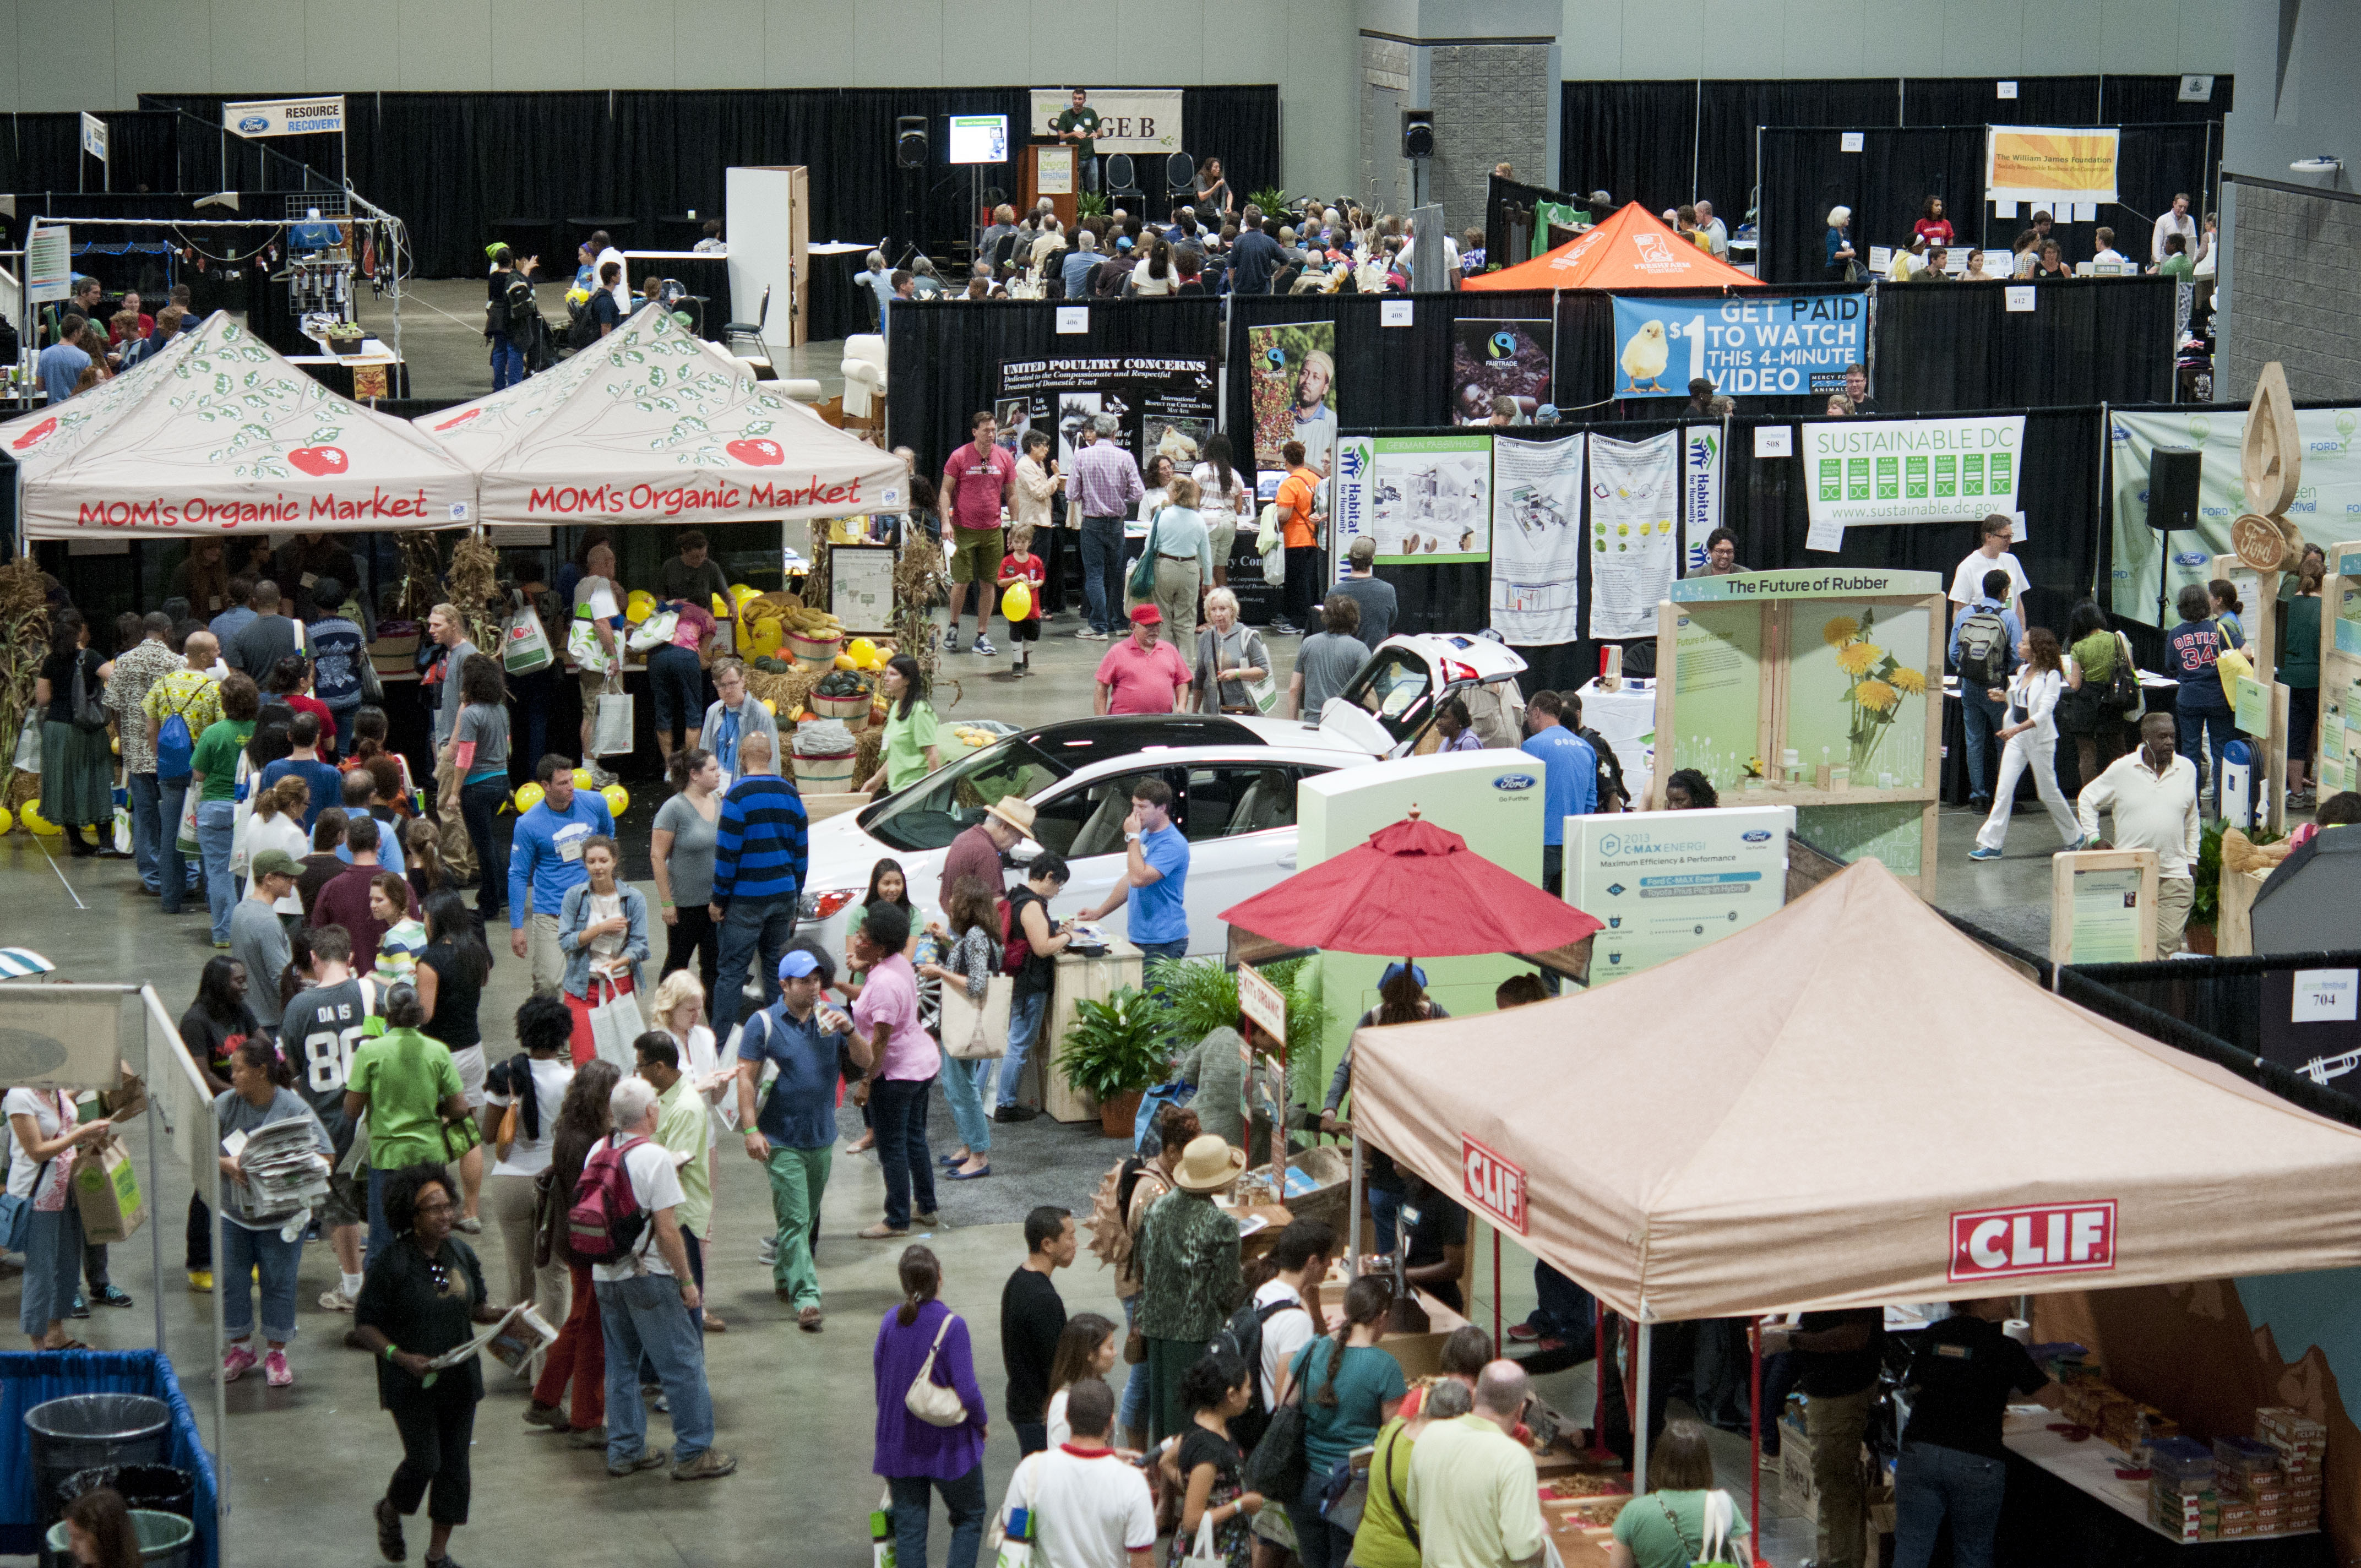 The Green Festival will be at the Washington Convention Center this weekend showcasing all things sustainable. (Photo: Balance Photography)